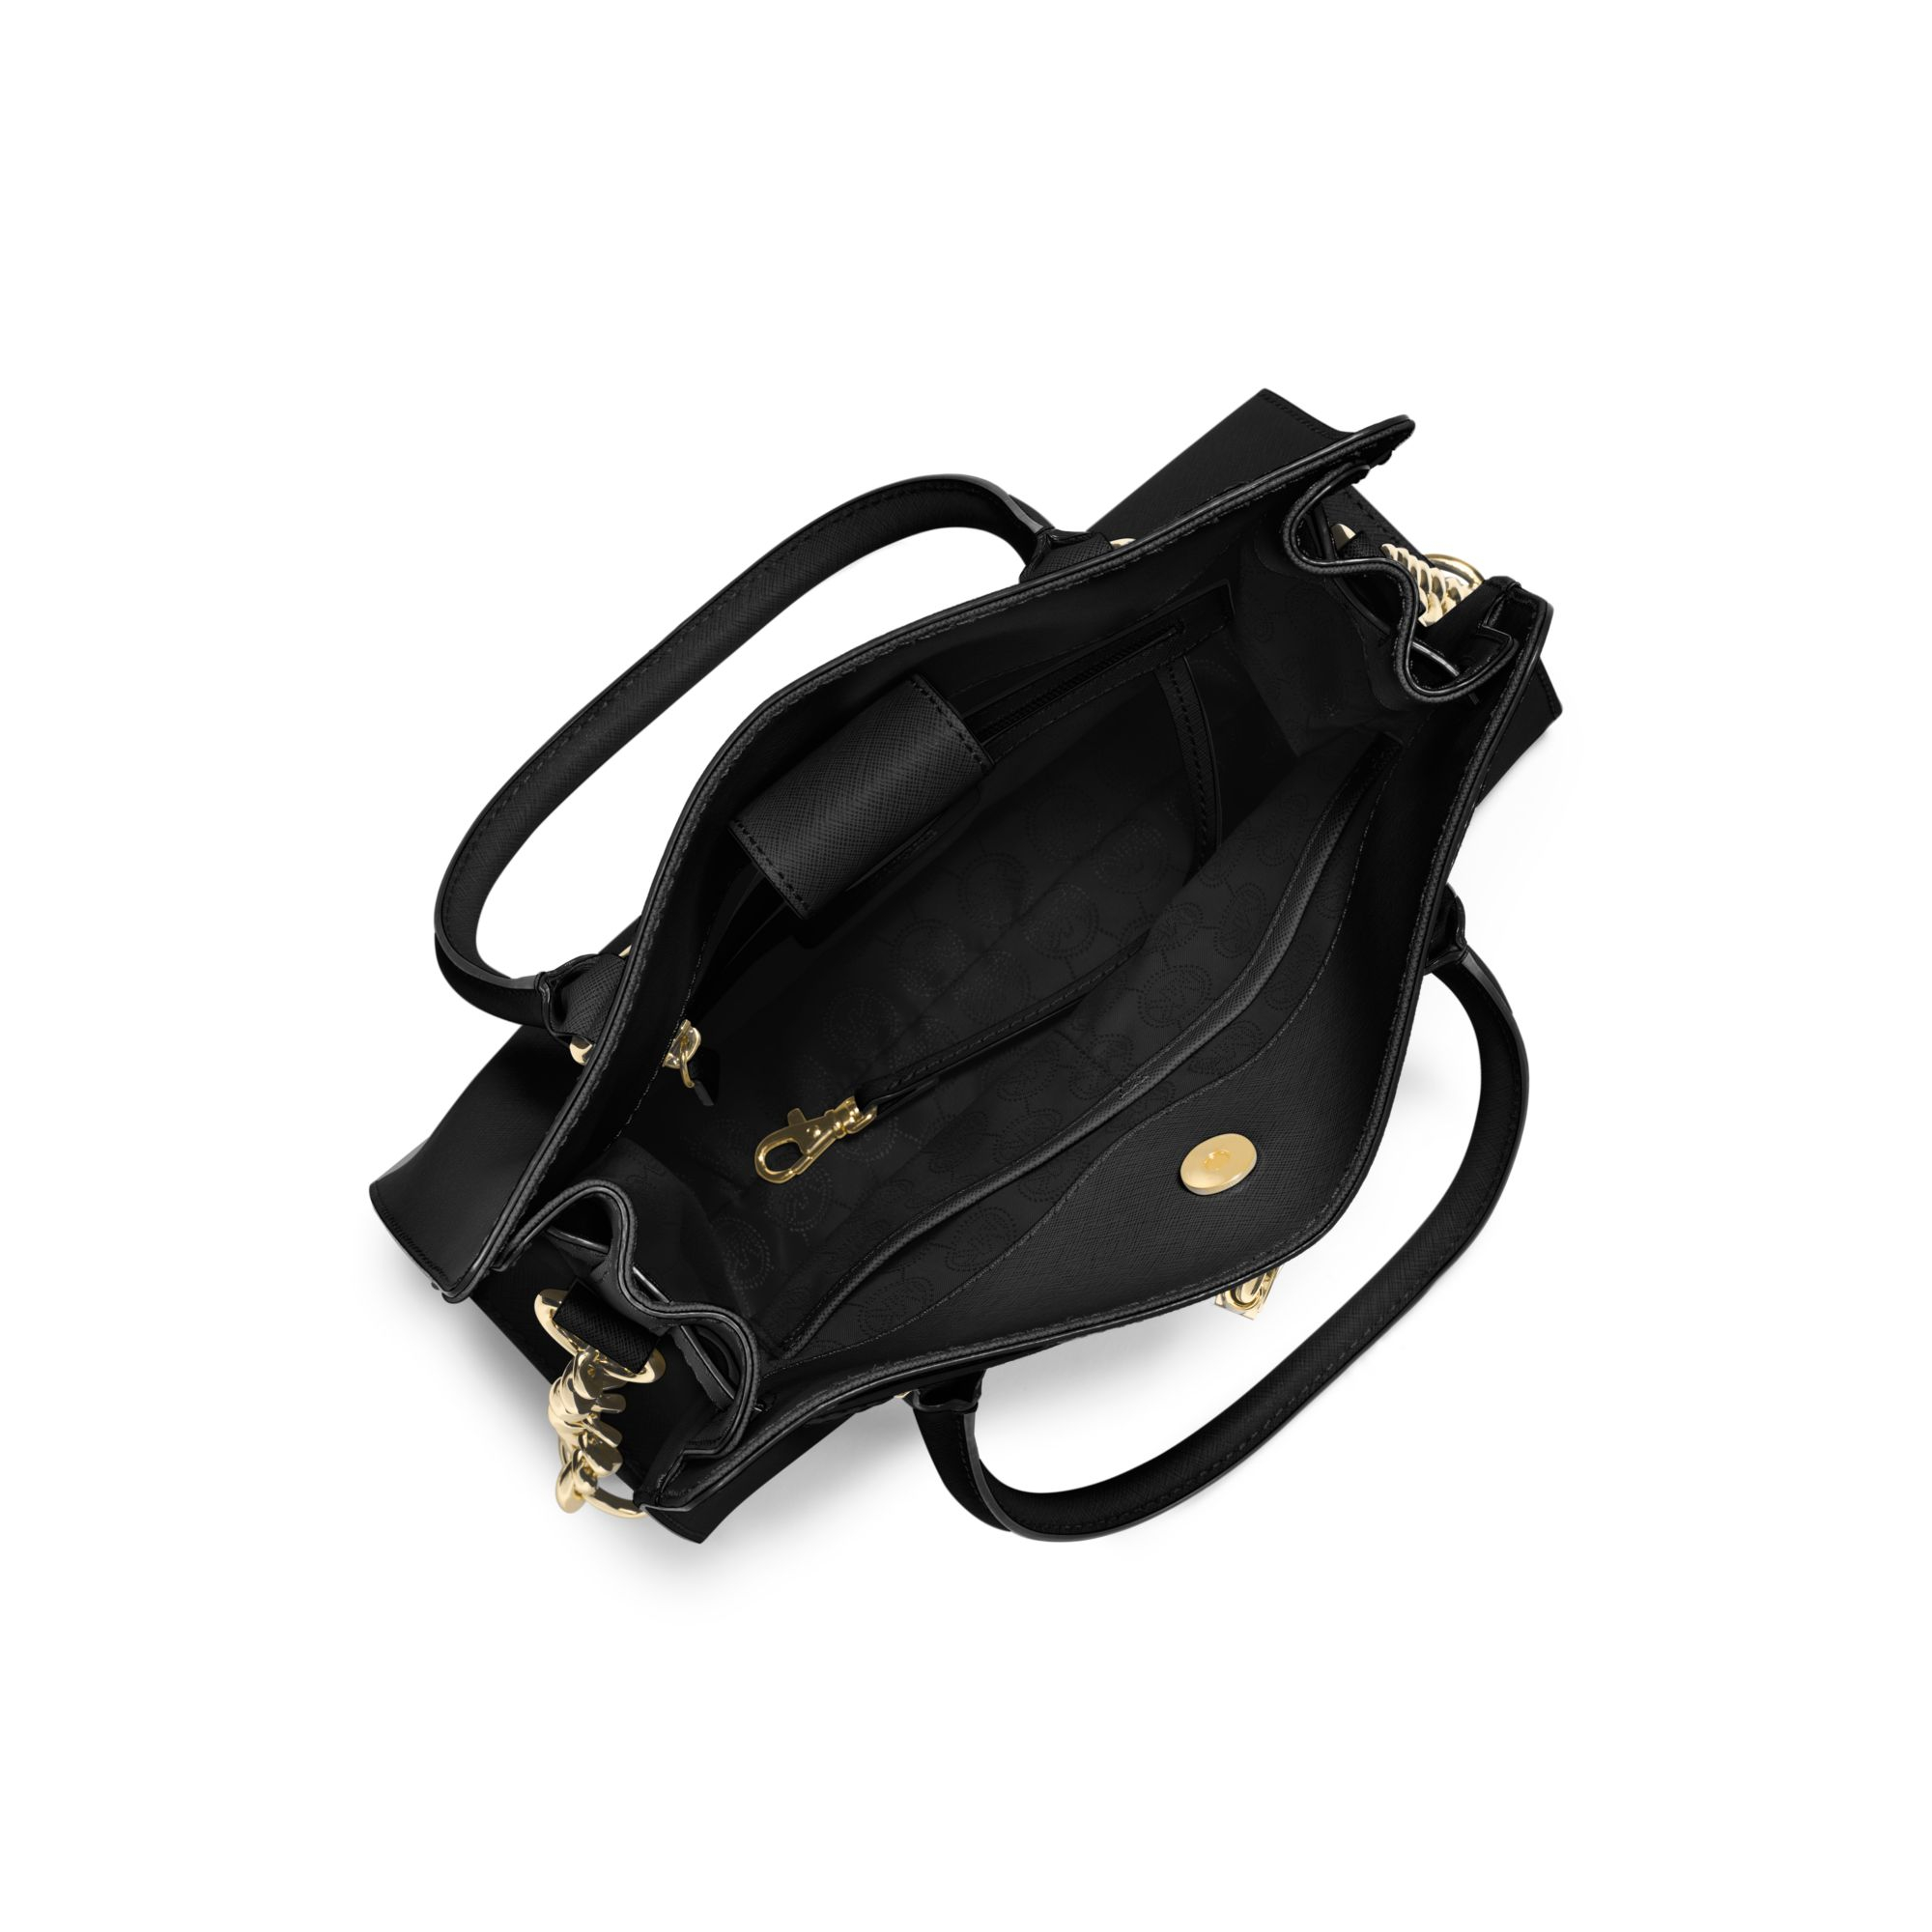 3b4cfbb6d41f3f 12345678910 74f16 aaca4; sweden lyst michael kors hamilton large saffiano  leather satchel in black 3a37b 9ddc9